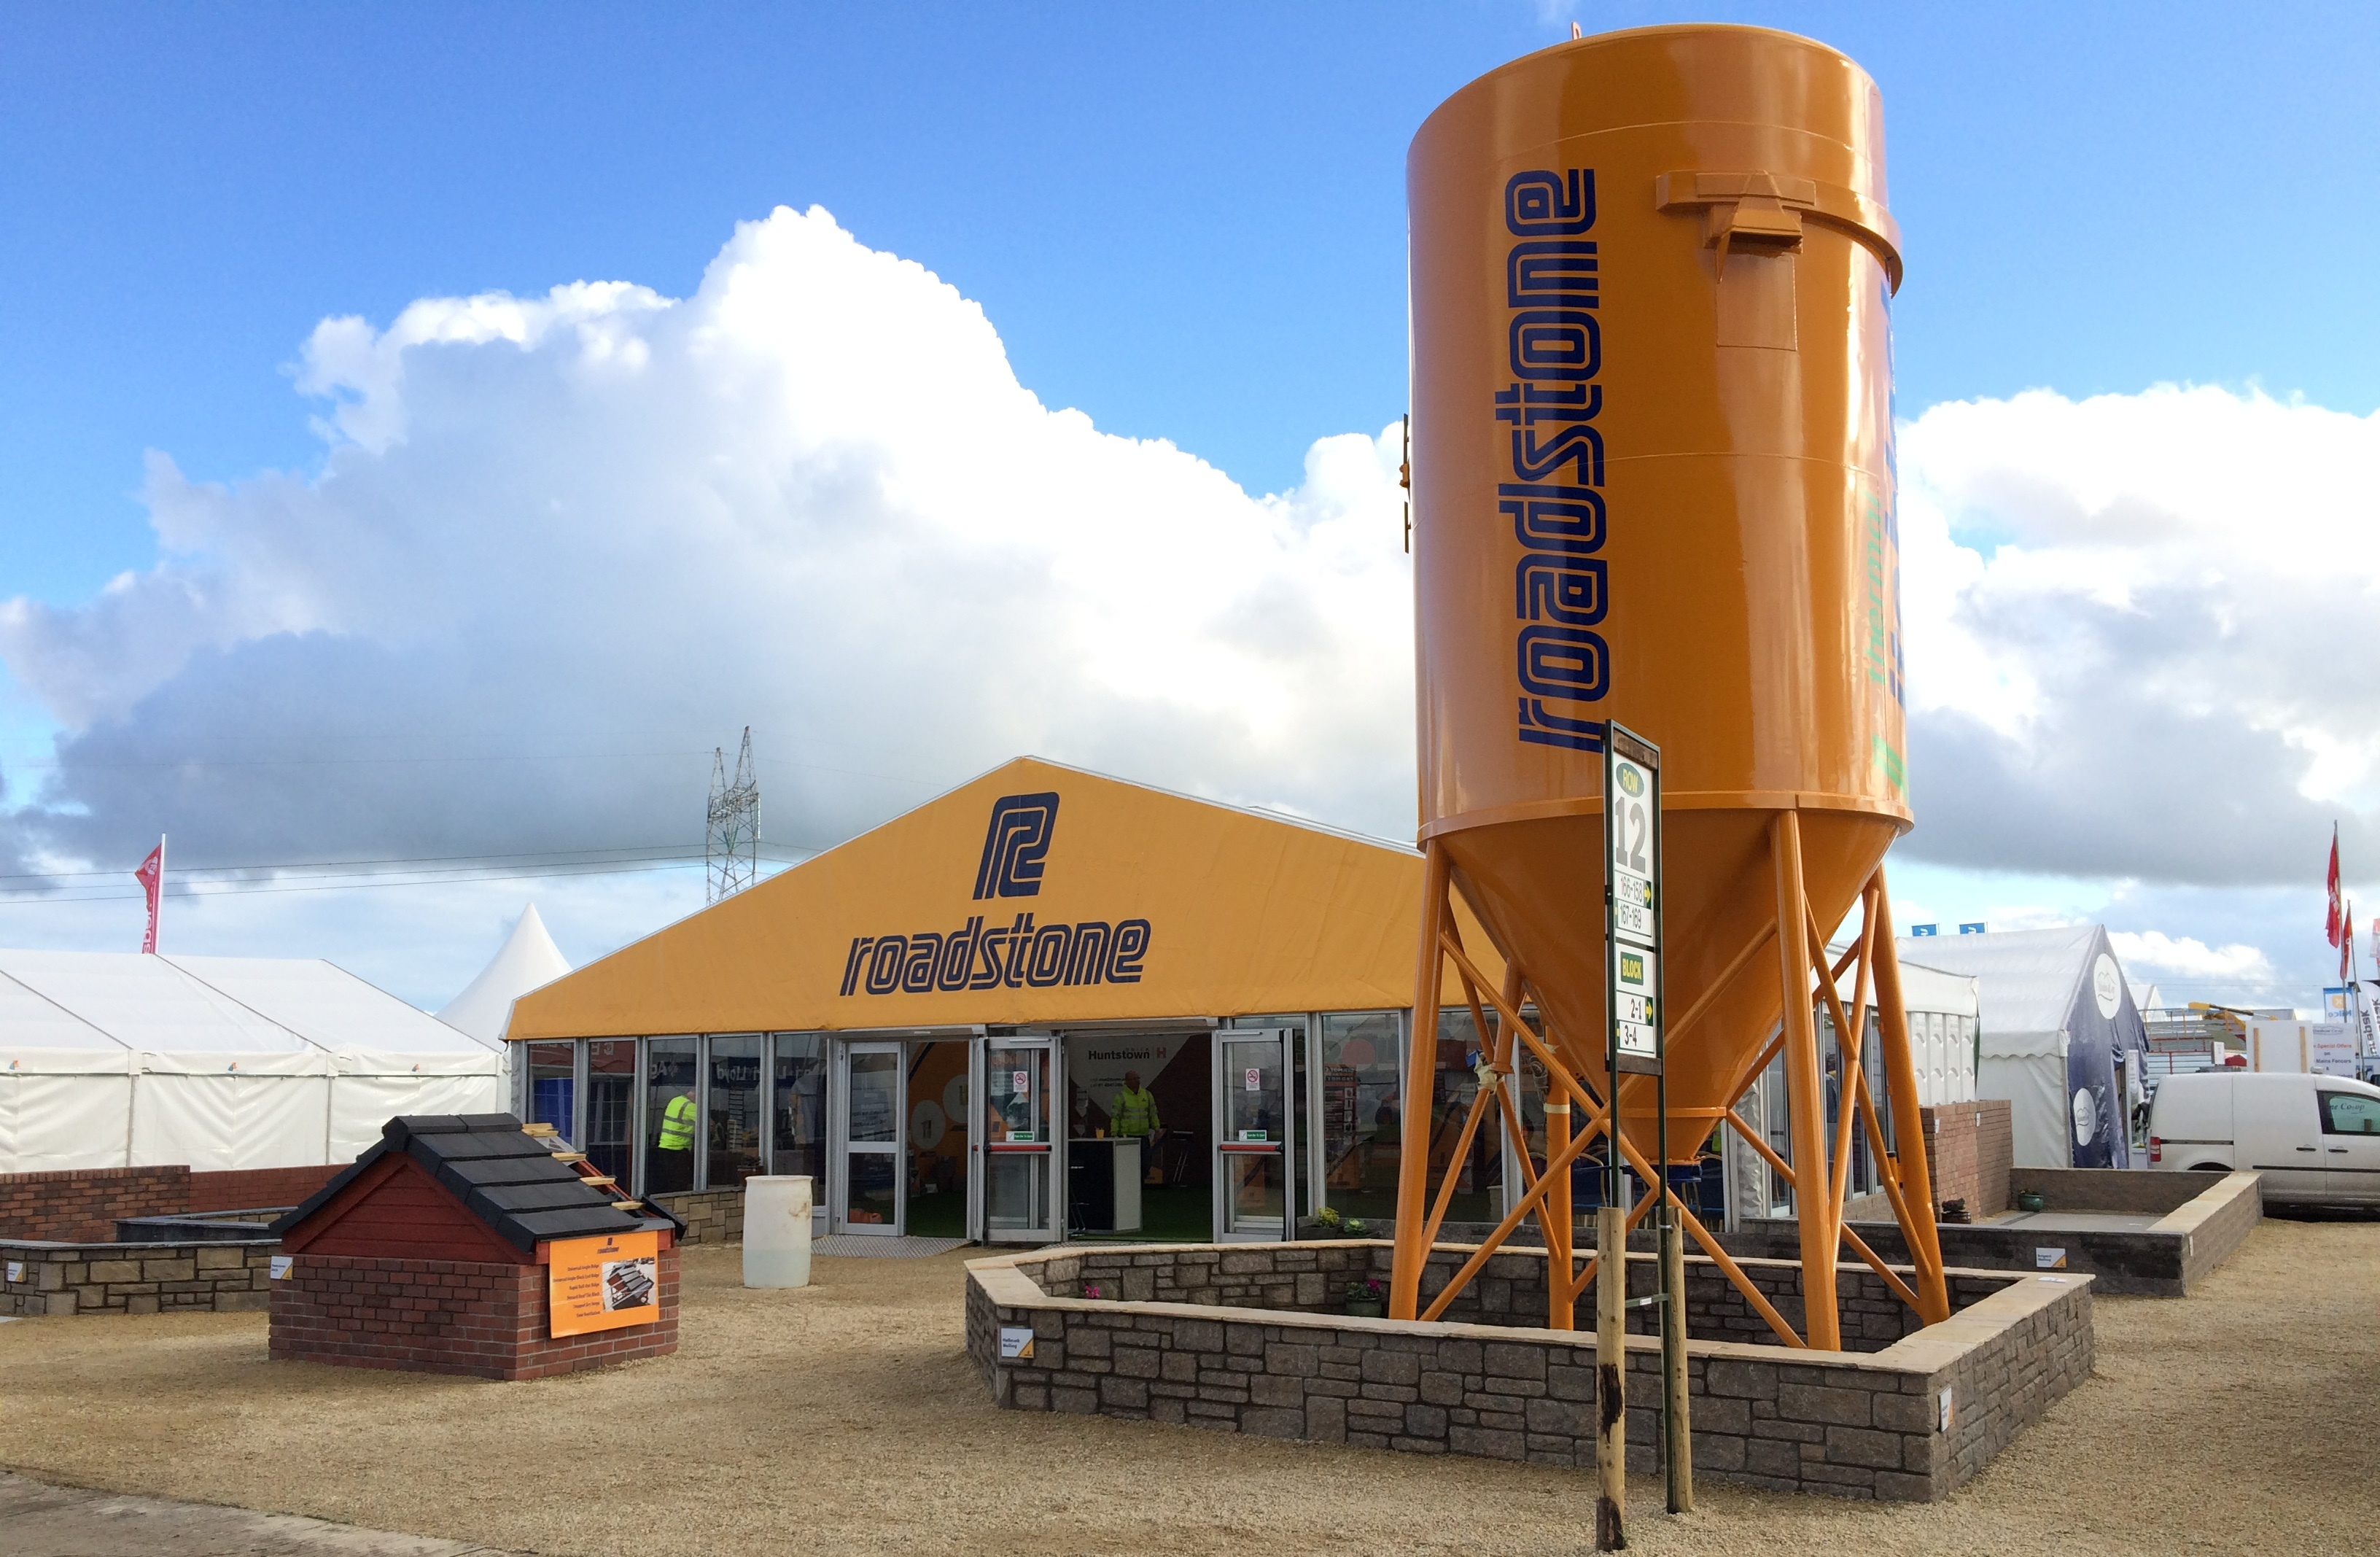 Roadstone stand at the national ploughing championships 2015